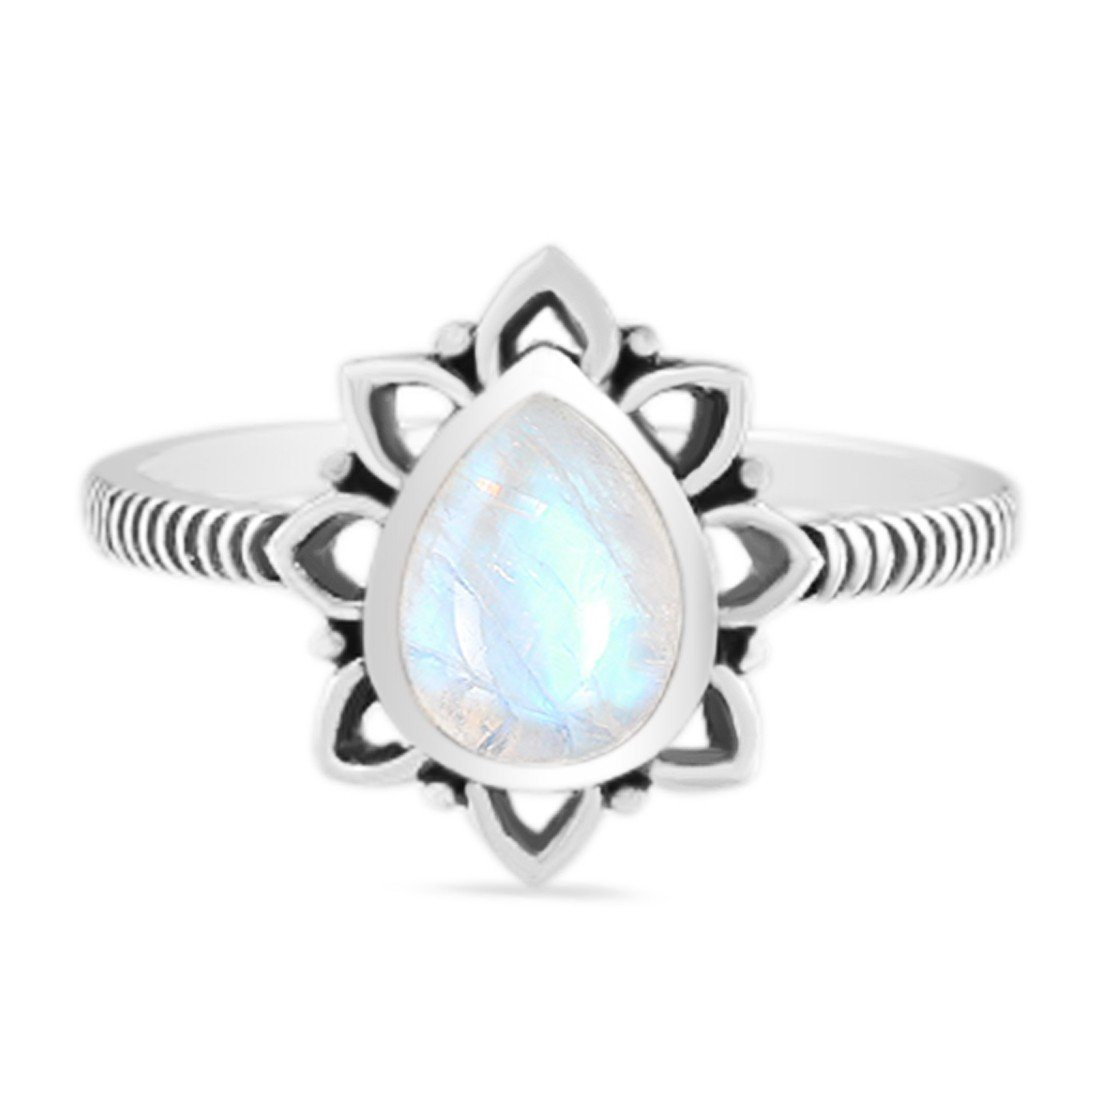 Moonstone Ring-Worthy Spark Sale Item 925 SILVER & MOONSTONE